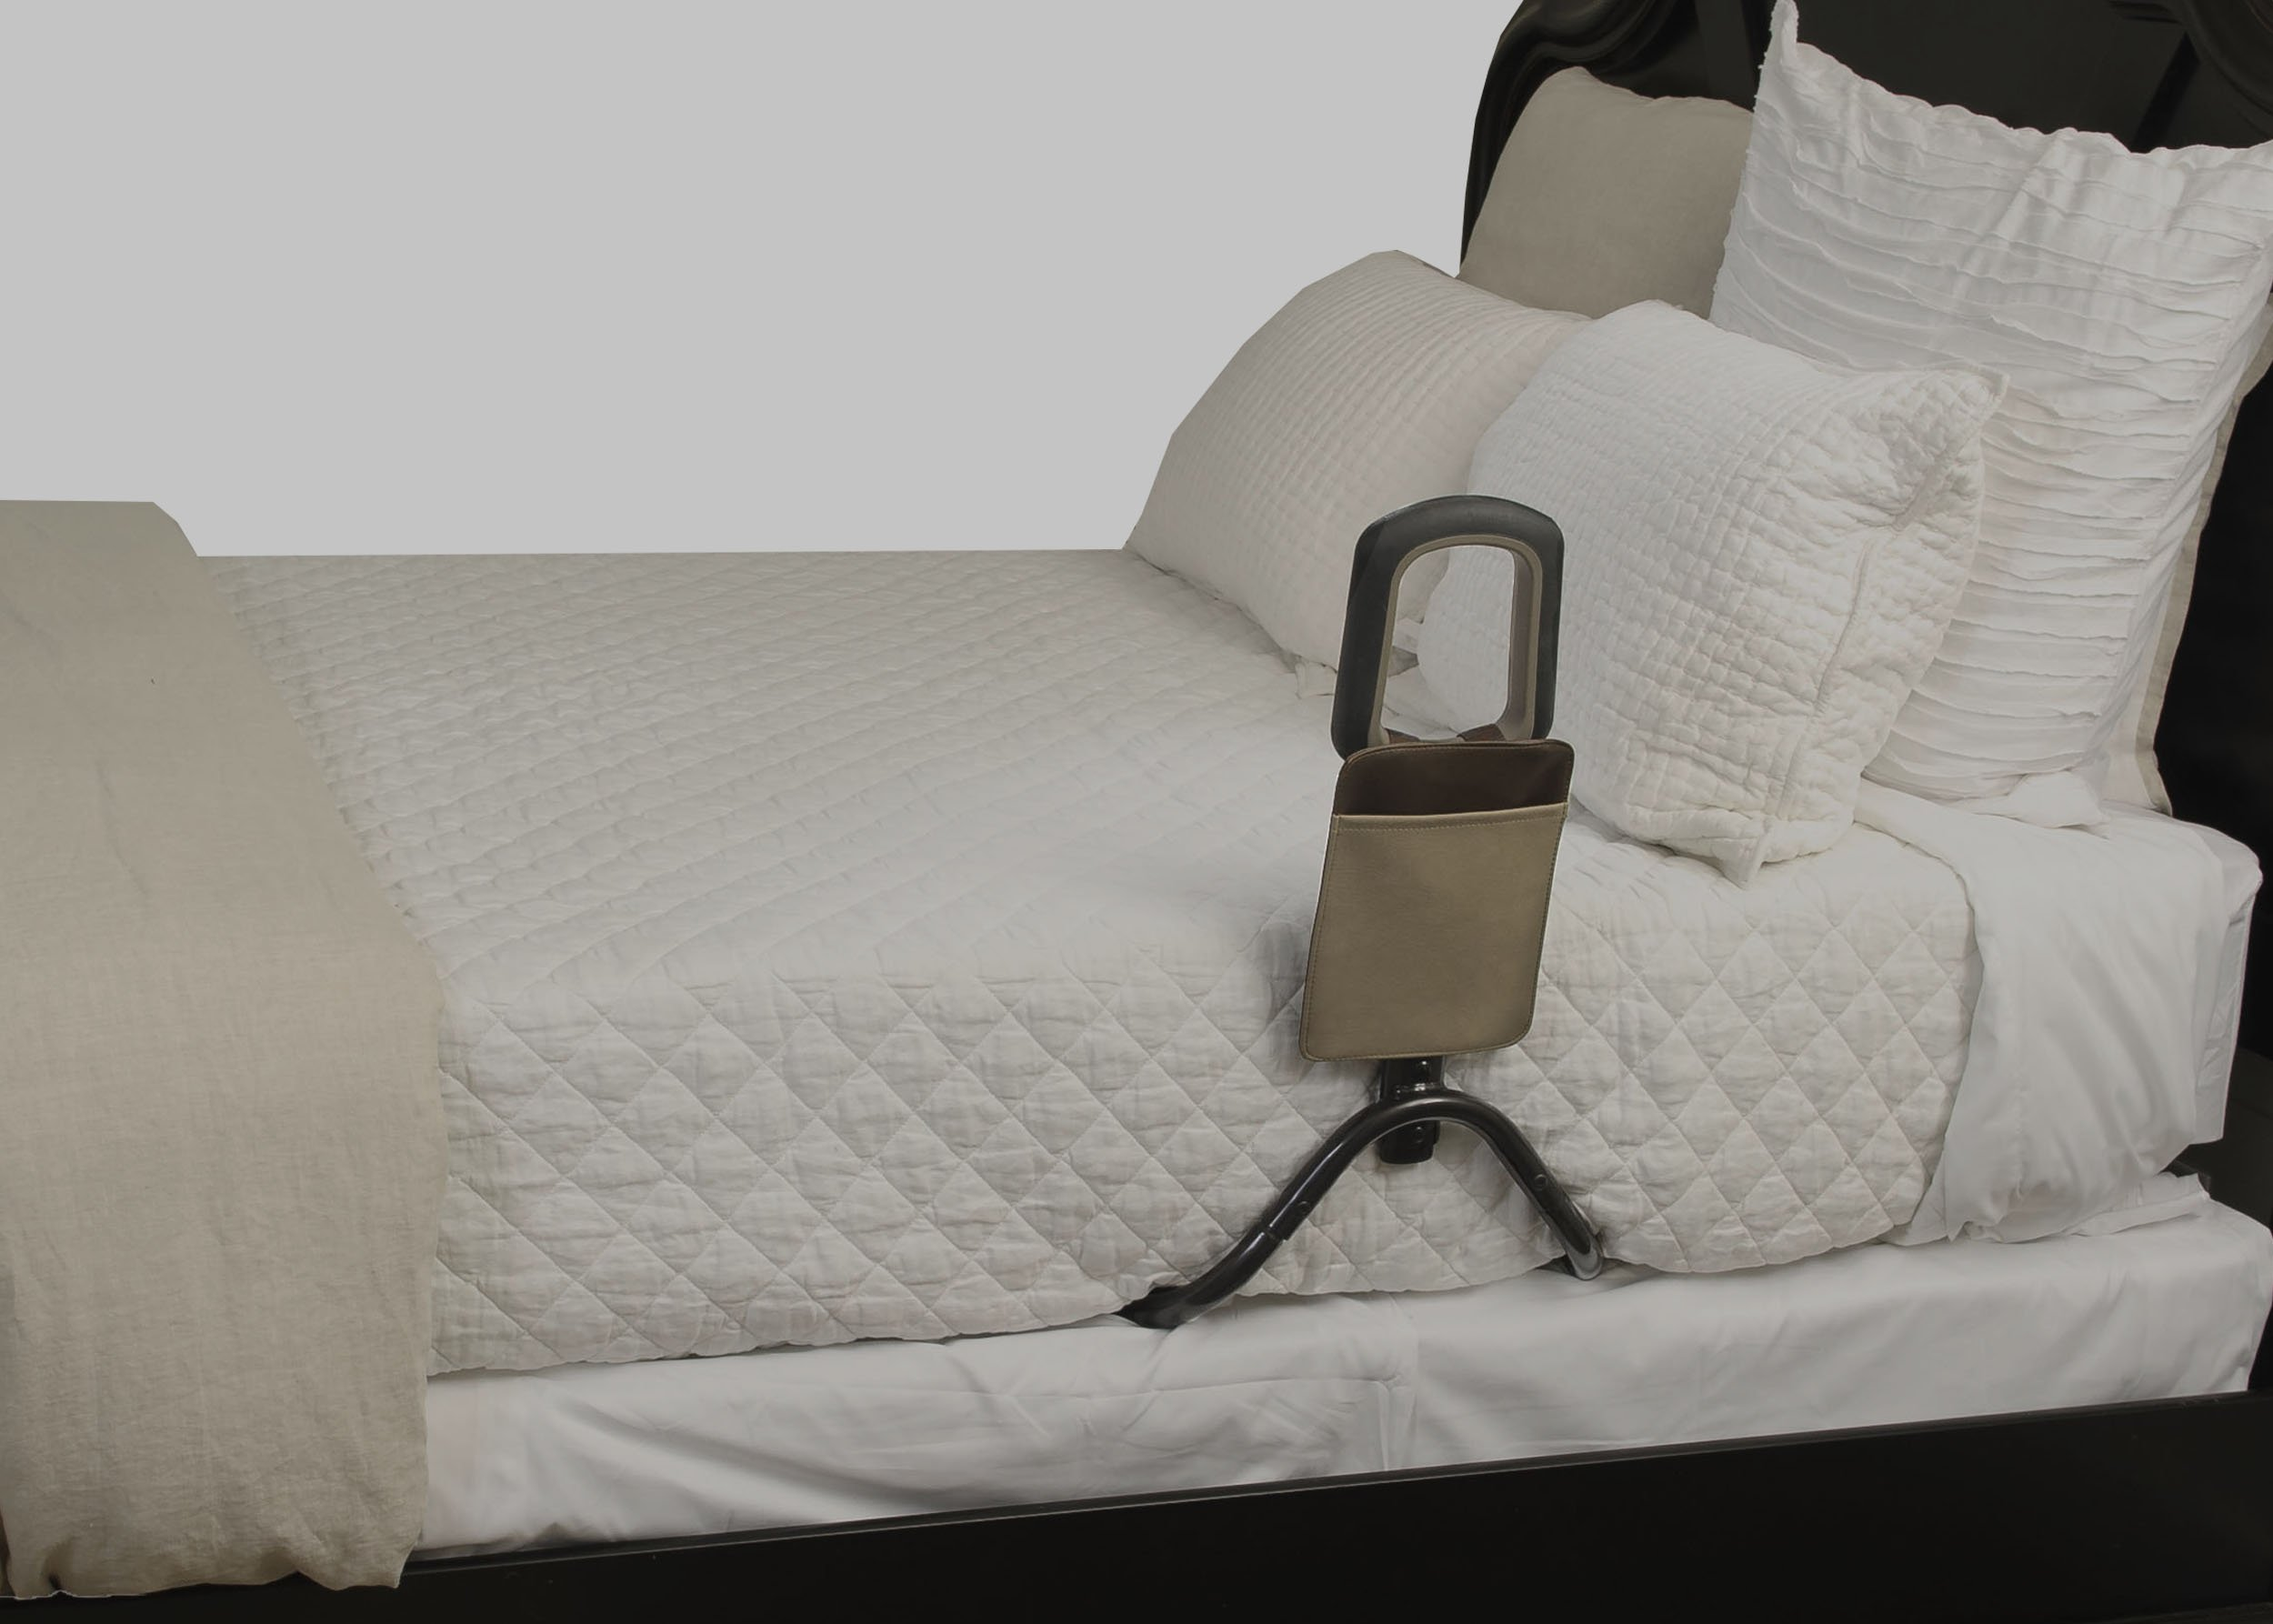 Signature Life Confidence Bed Handle - Elderly Safety Bed Rail & Mobility Support Cane + Organizer Pouch by Signature Life (Image #4)